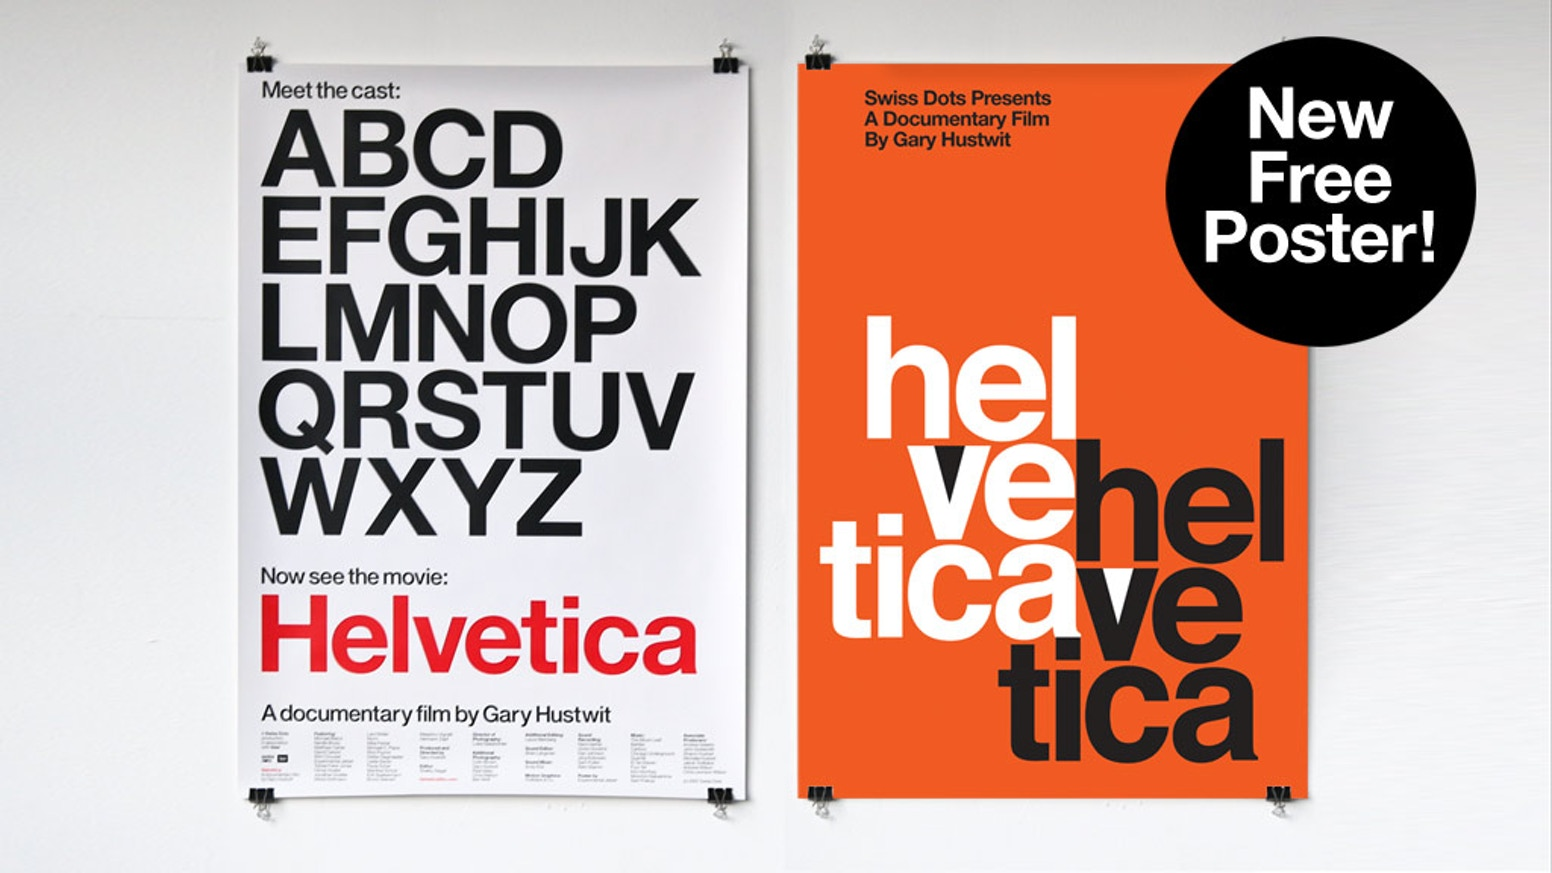 A Reprint Of The Original Helvetica Film Poster Designed By Experimental Jetset Plus New